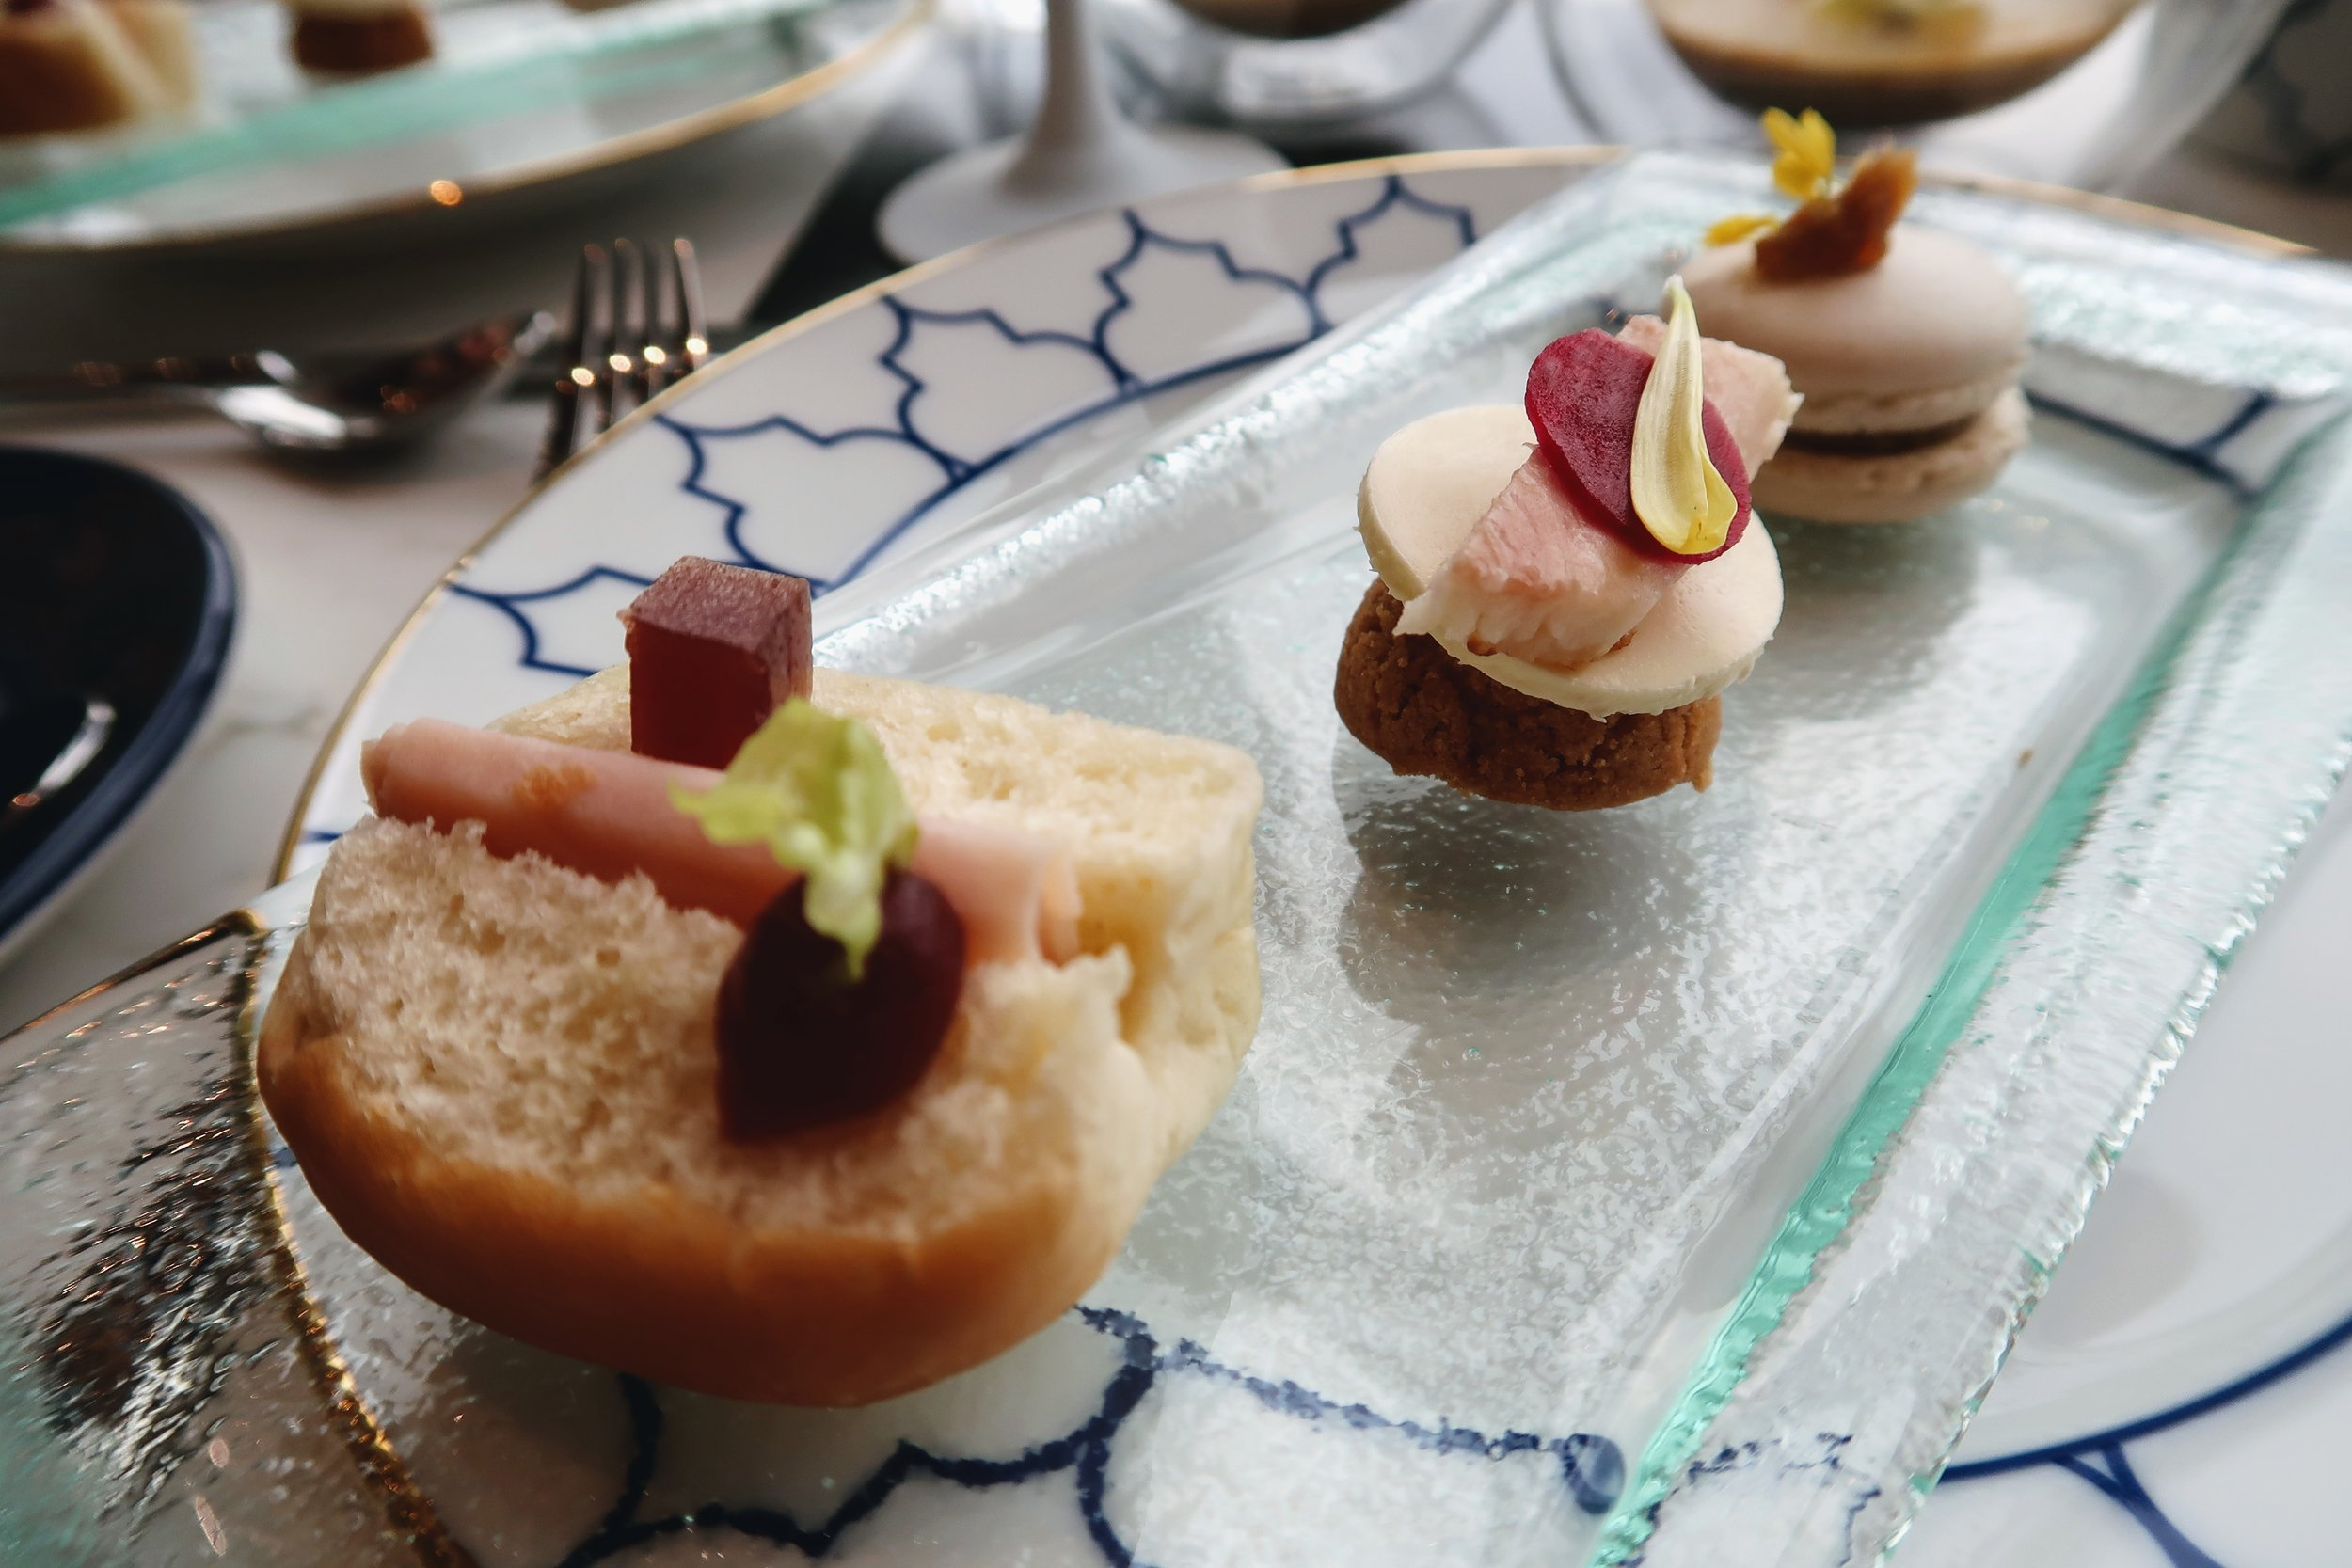 Left to right: Smoked Christmas turkey breast sandwich with cranberry sauce, smoked eel with horseradish mousse and truffle mushroom macaroon.